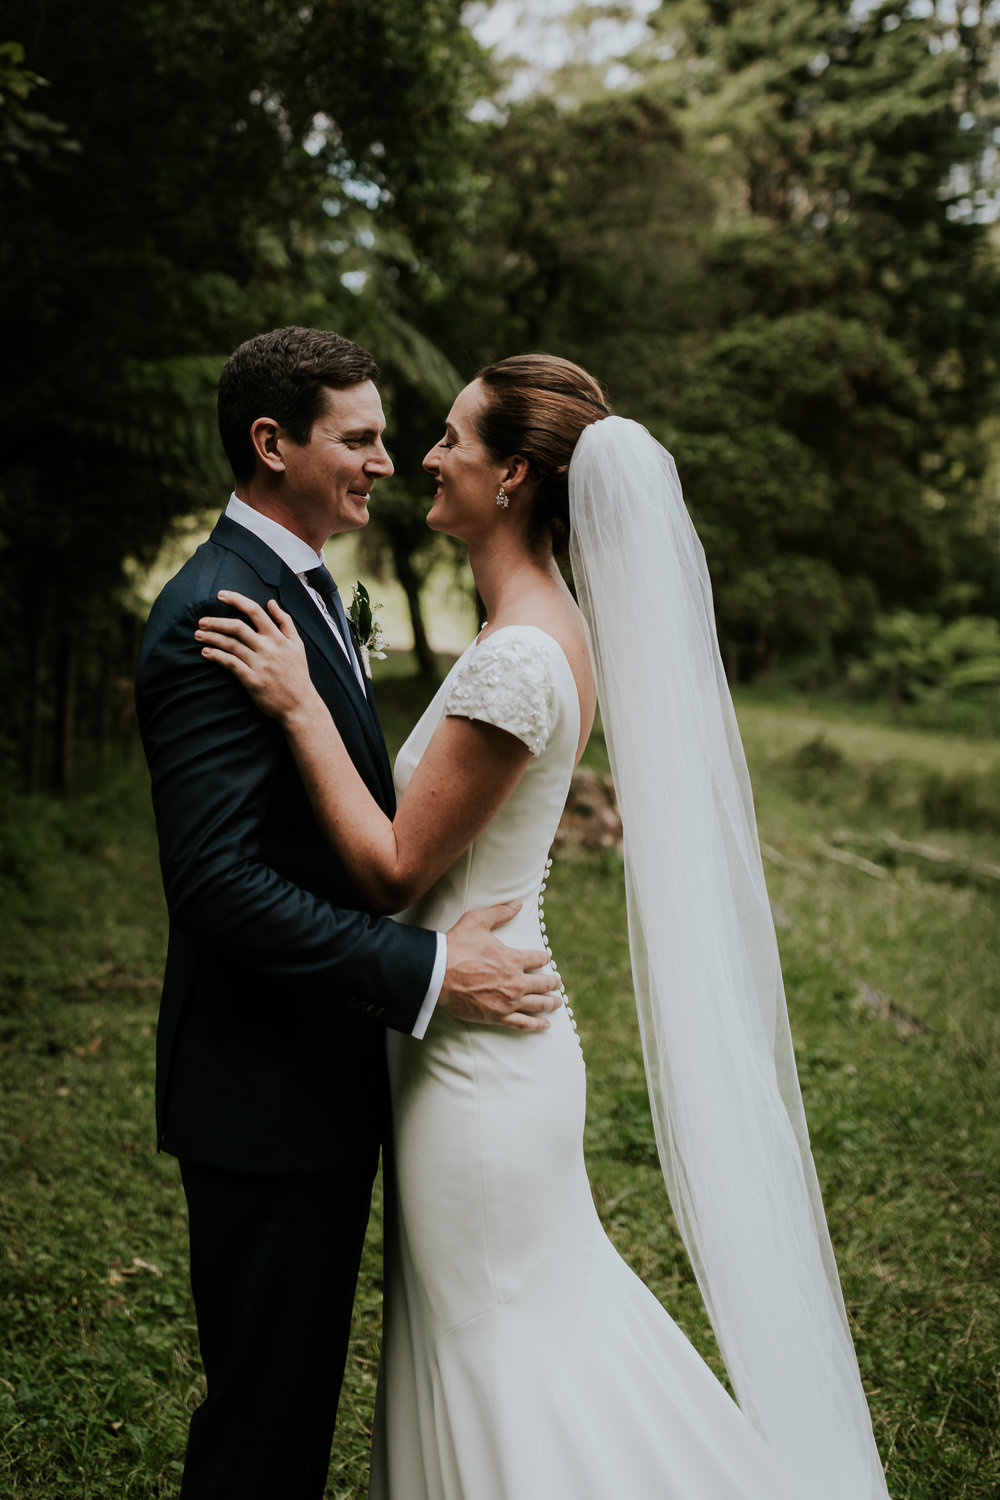 Portrait of bride and groom during wedding day in New Zealand